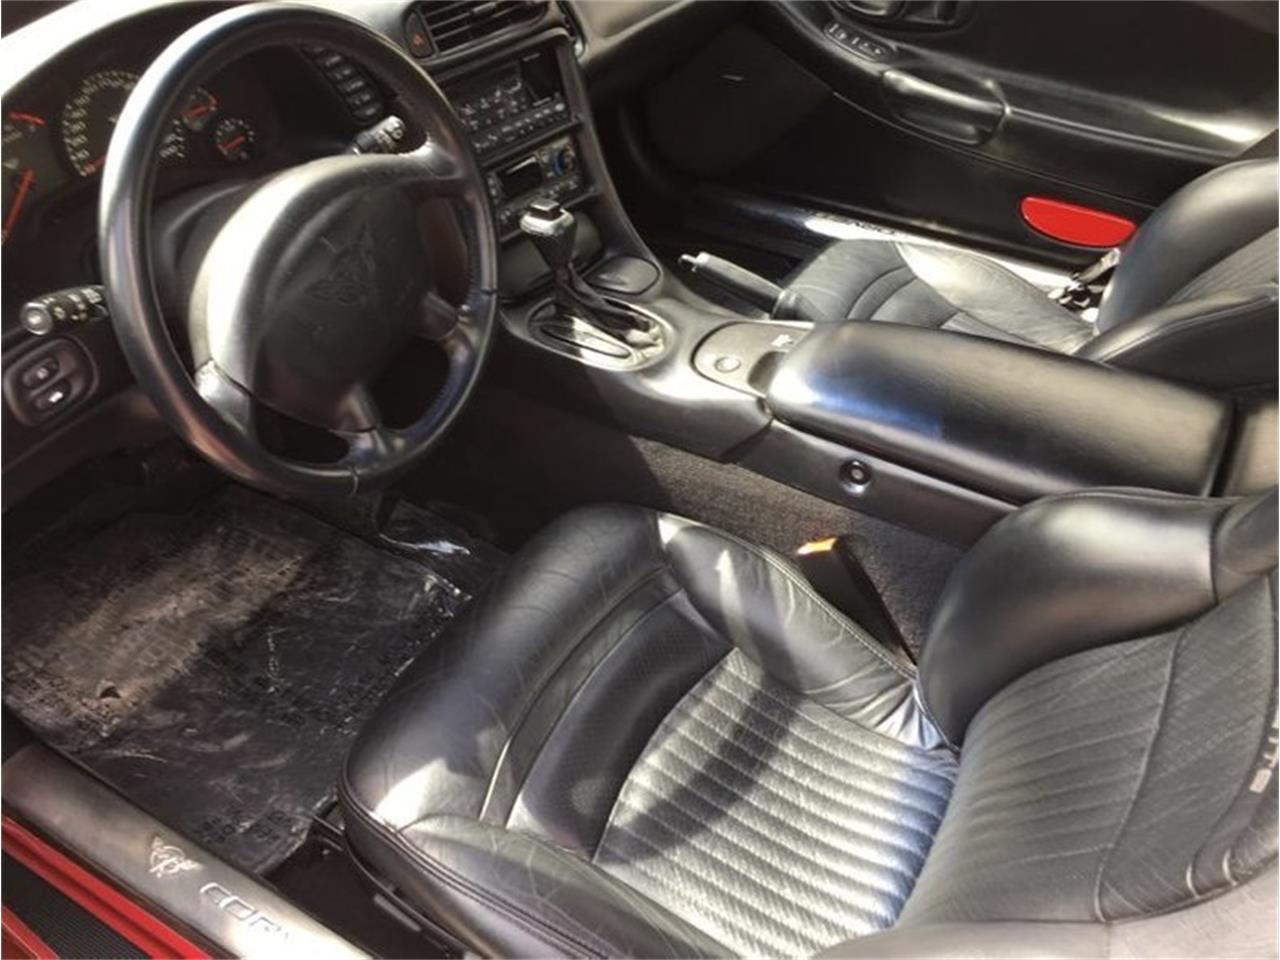 Large Picture of '02 Chevrolet Corvette located in Midland Texas Auction Vehicle - PWBK